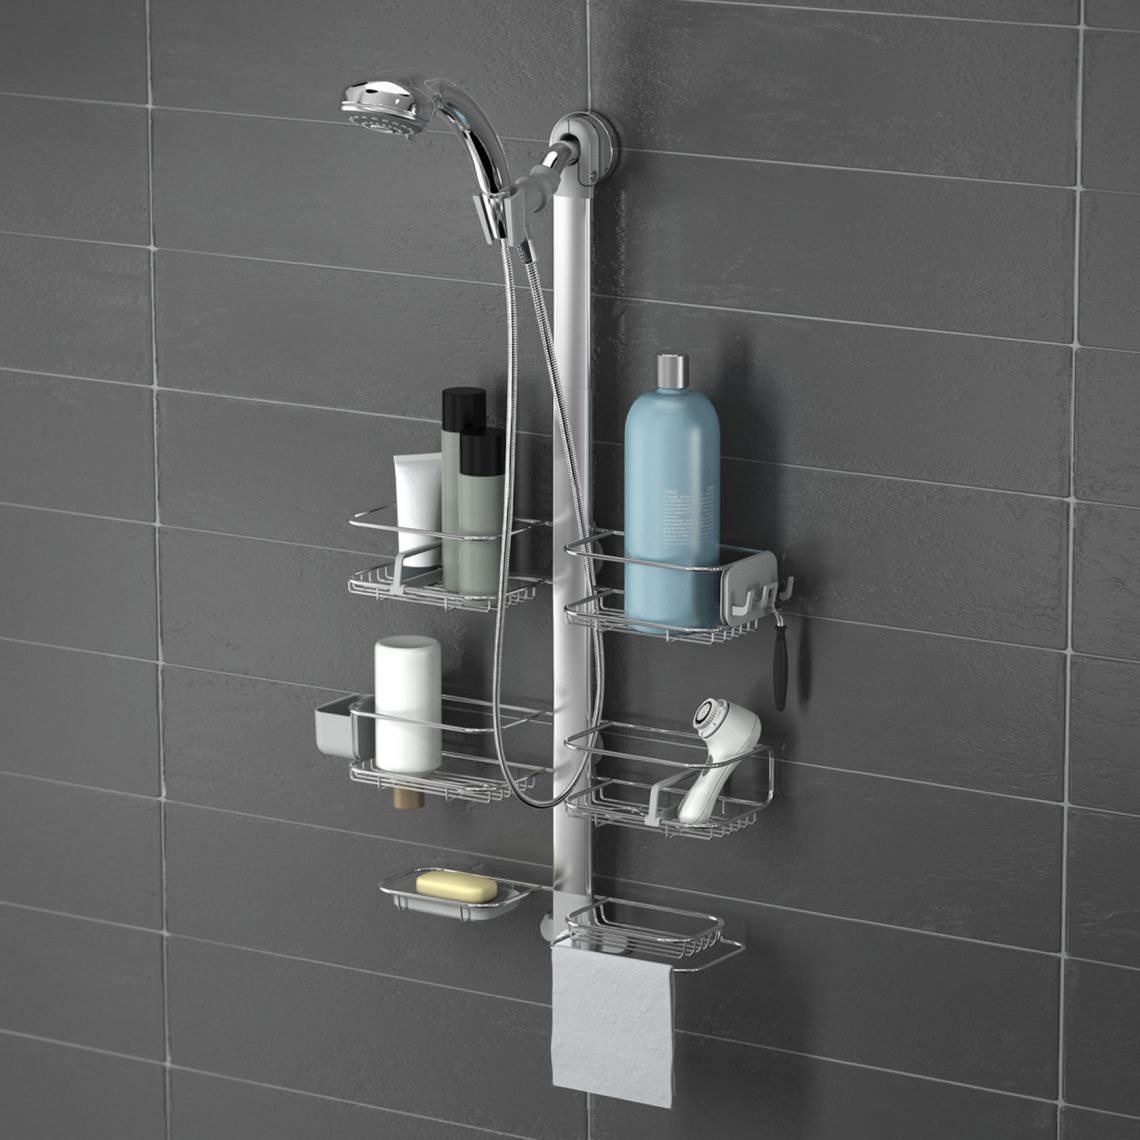 Adjustable Shower Caddy Stainless Steel Anodized Aluminum Housses